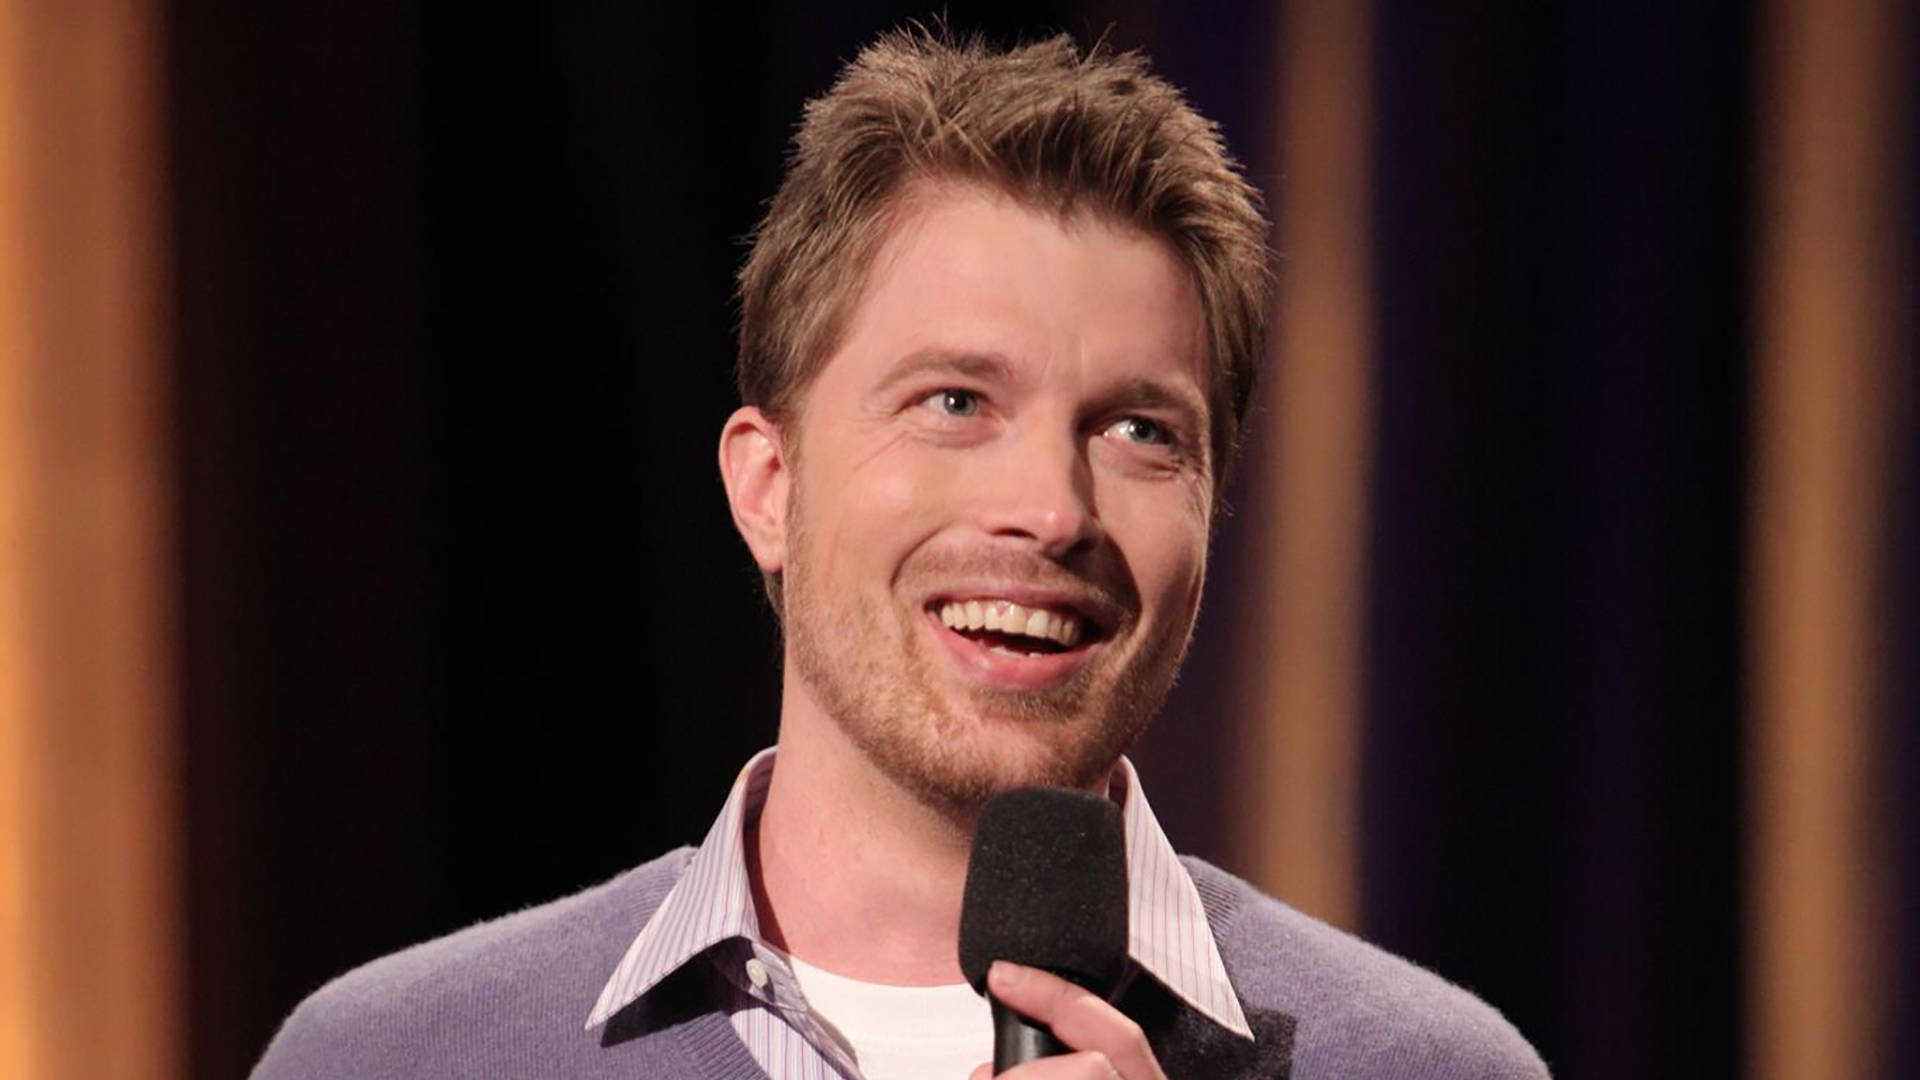 Shane Mauss Photo: Courtesy of the artist